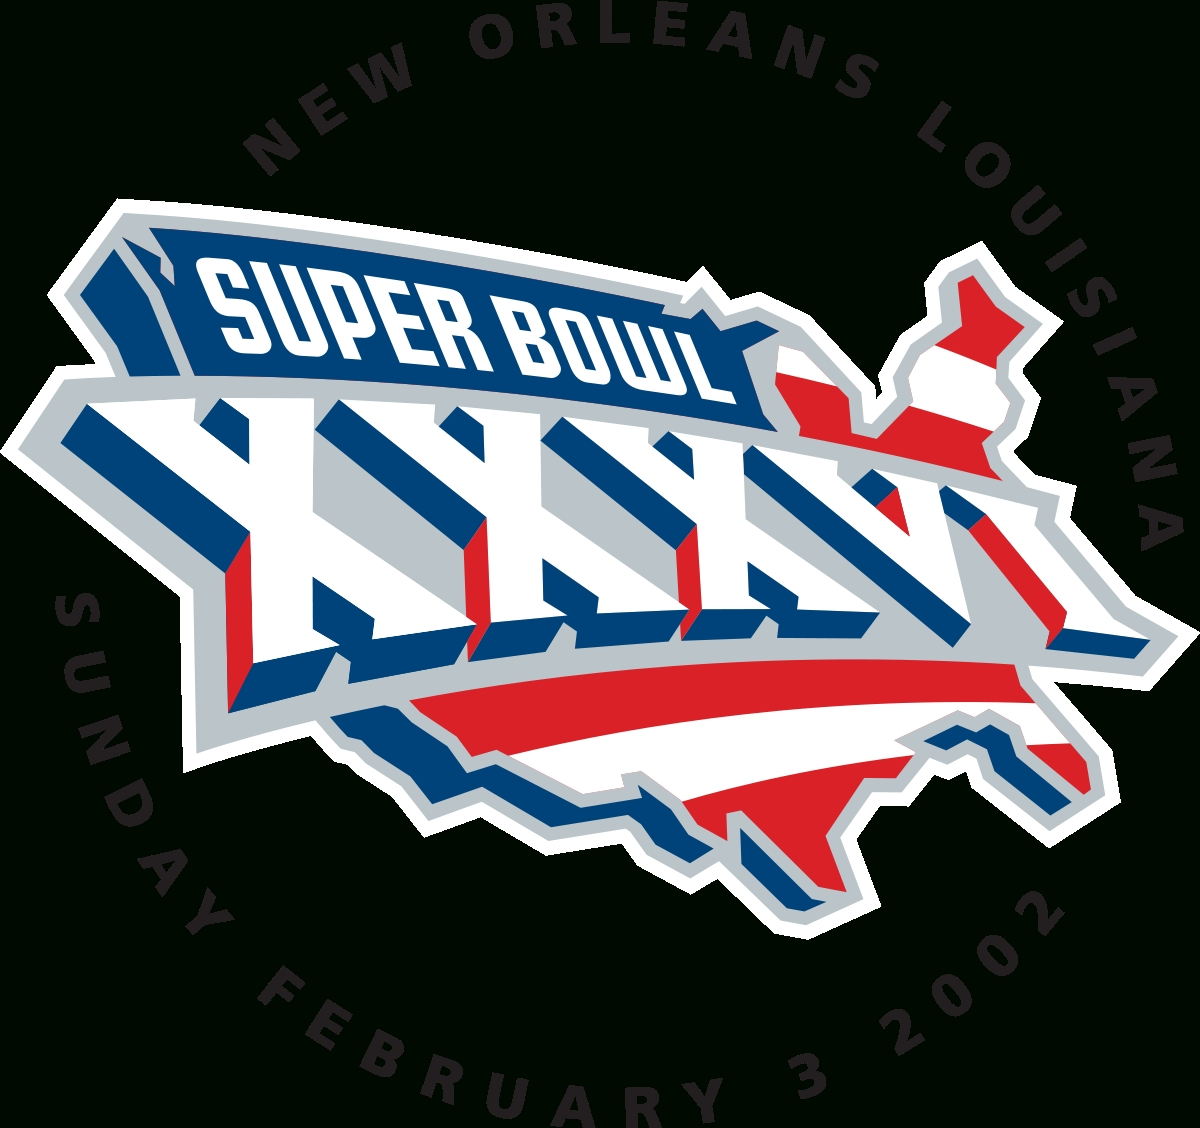 Super Bowl Xxxvi - Wikipedia regarding Super Bowls By Year